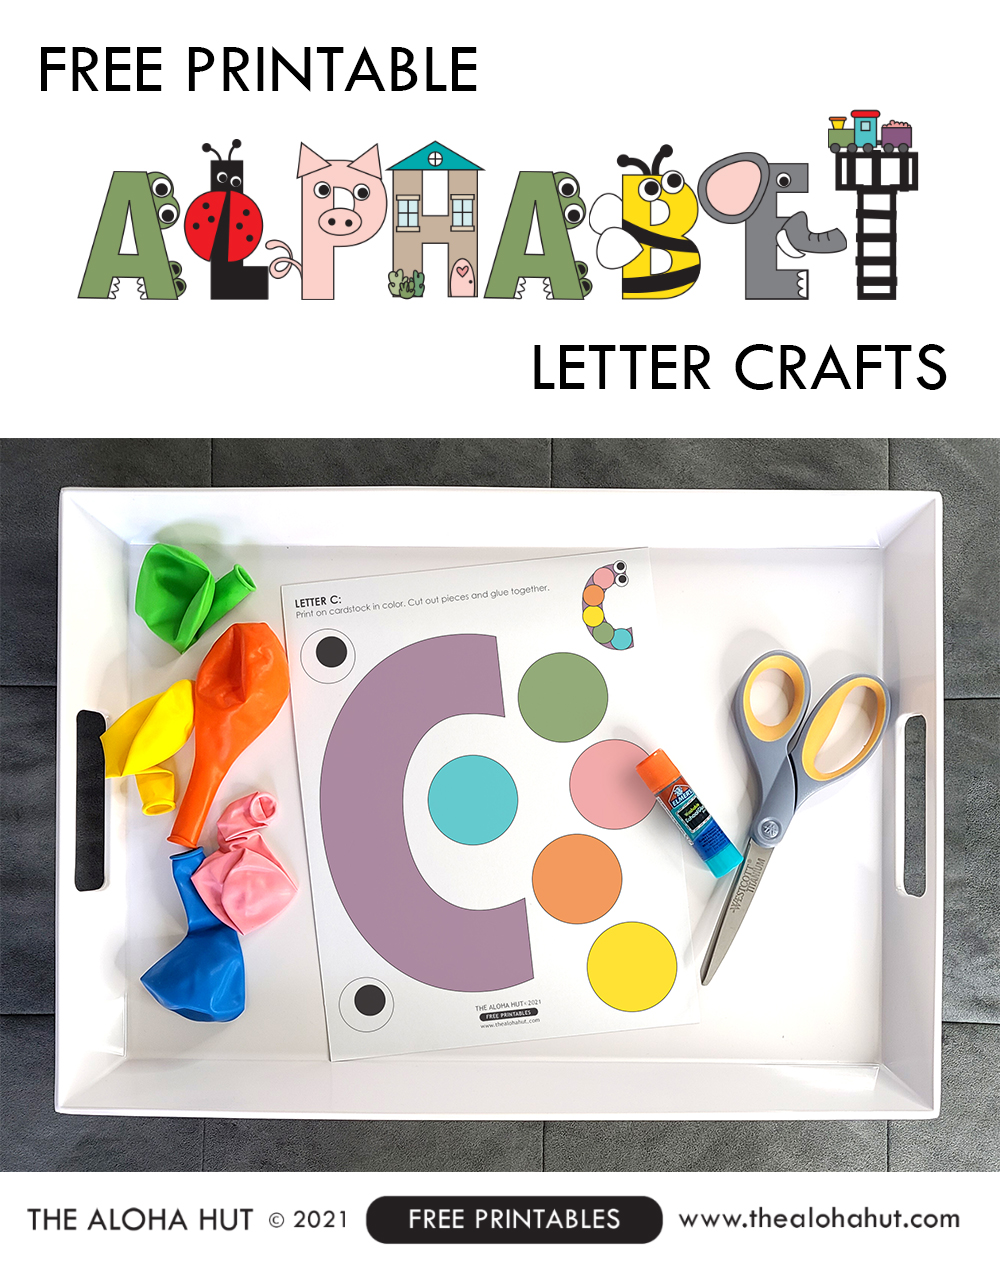 Alphabet Letter Crafts - Letter C - free printable 3 by the Aloha Hut